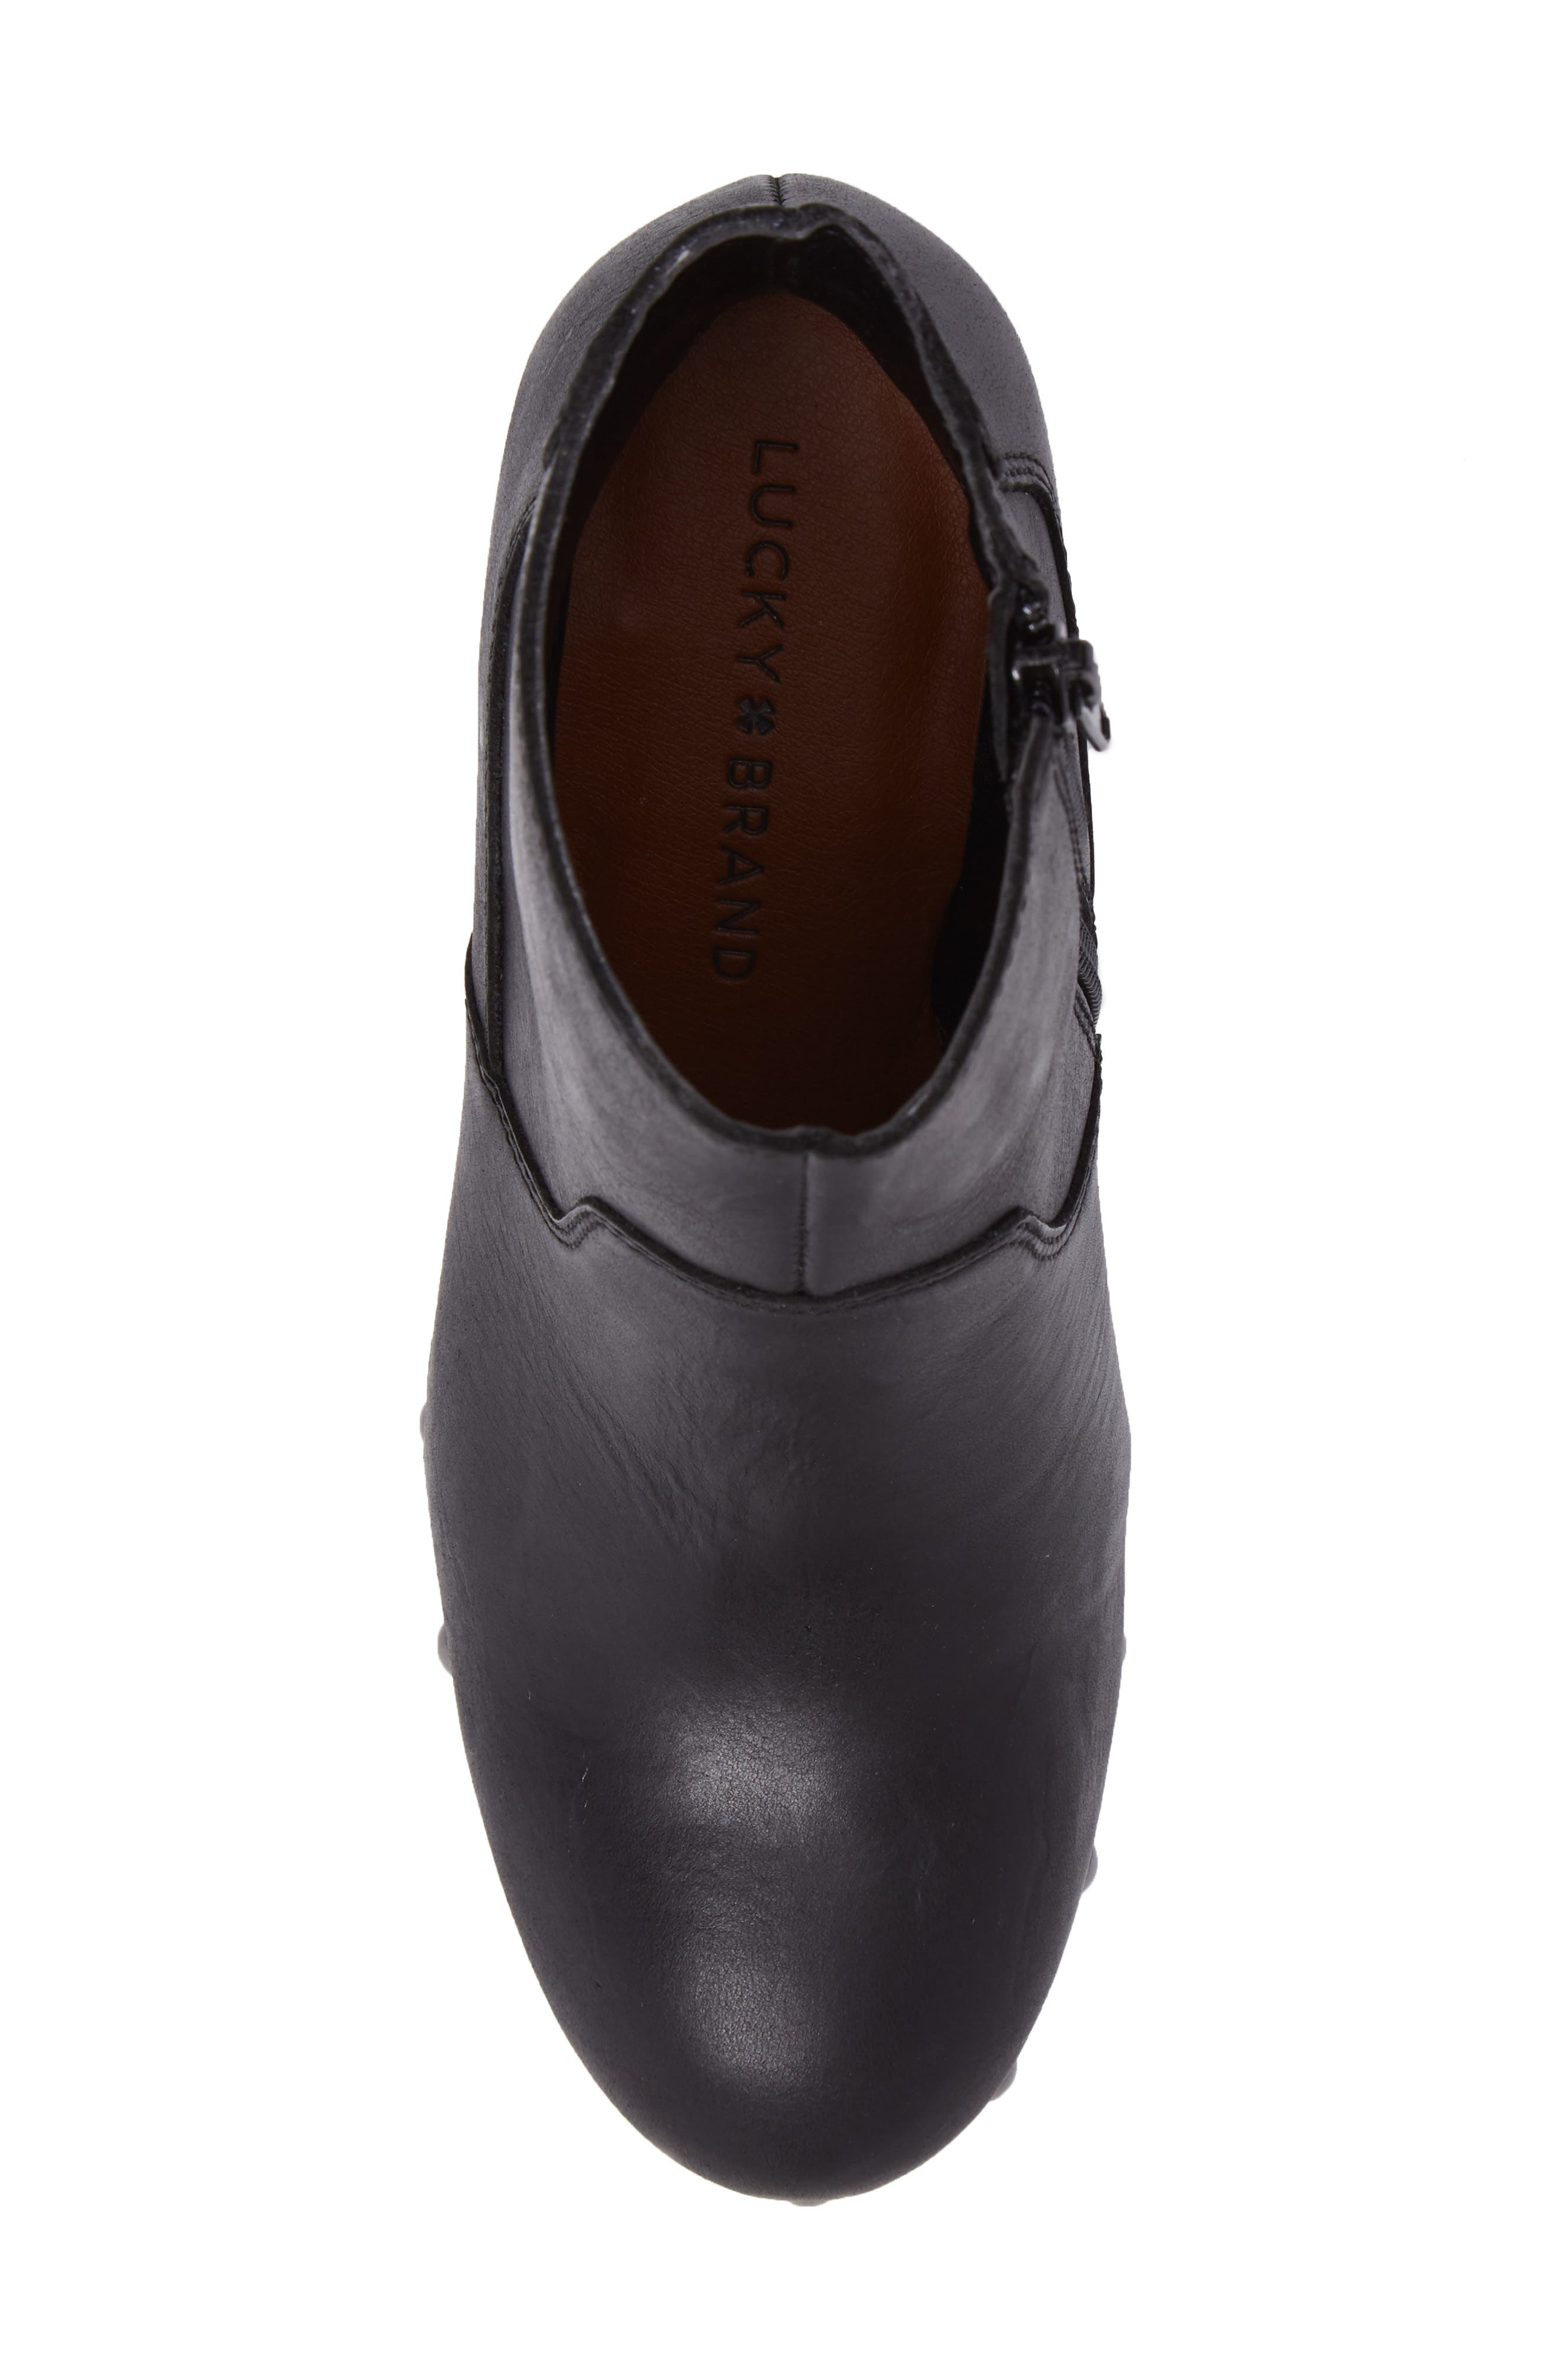 Yasamin Bootie,                             Alternate thumbnail 5, color,                             Black Leather